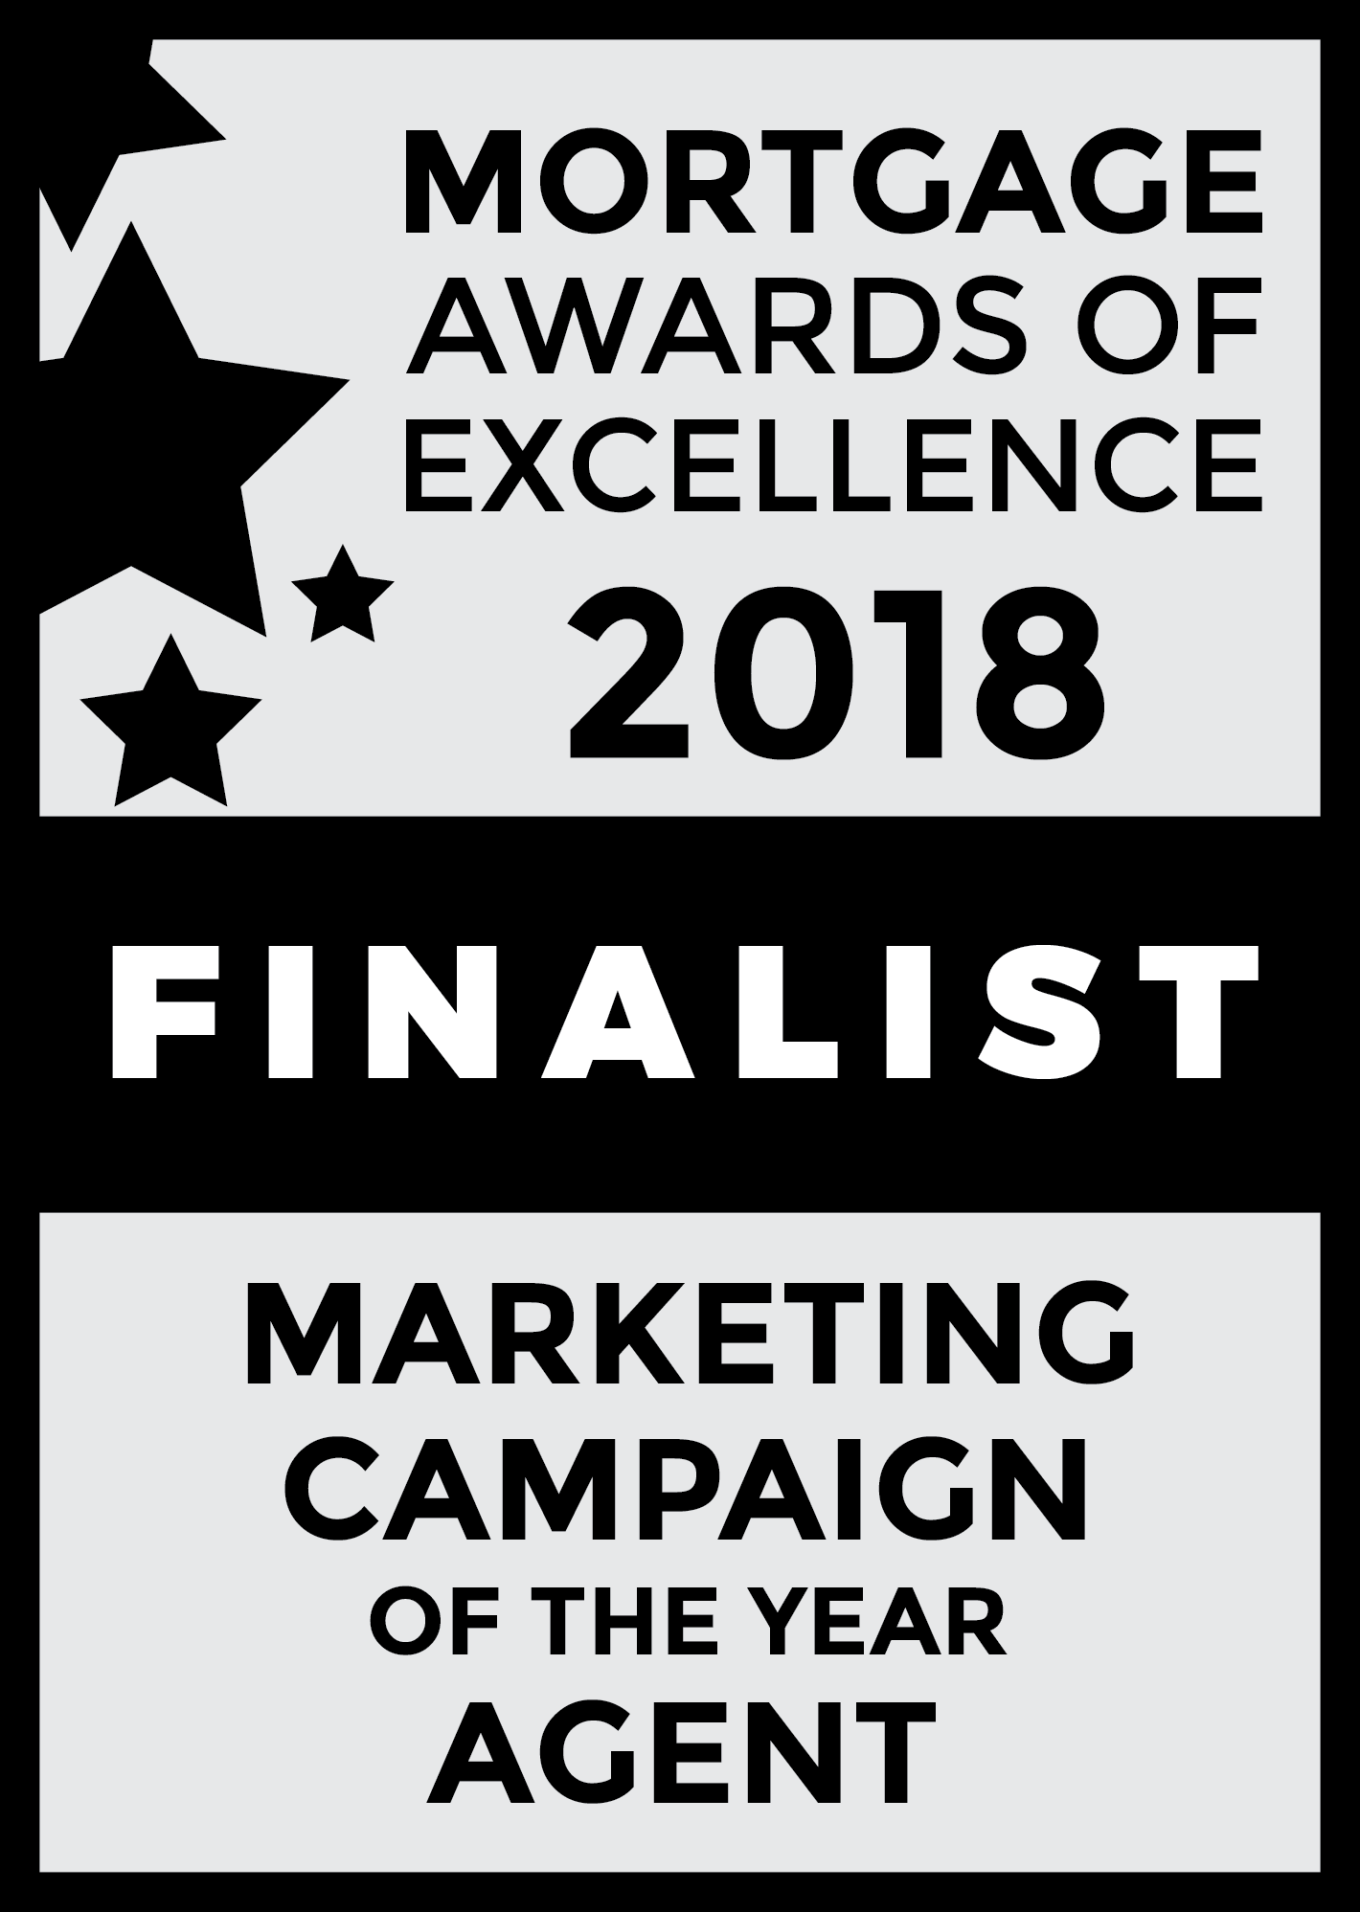 Steve Garganis Marketing Campaign of the Year Badge - Mortgage Awards of Excellence 2018